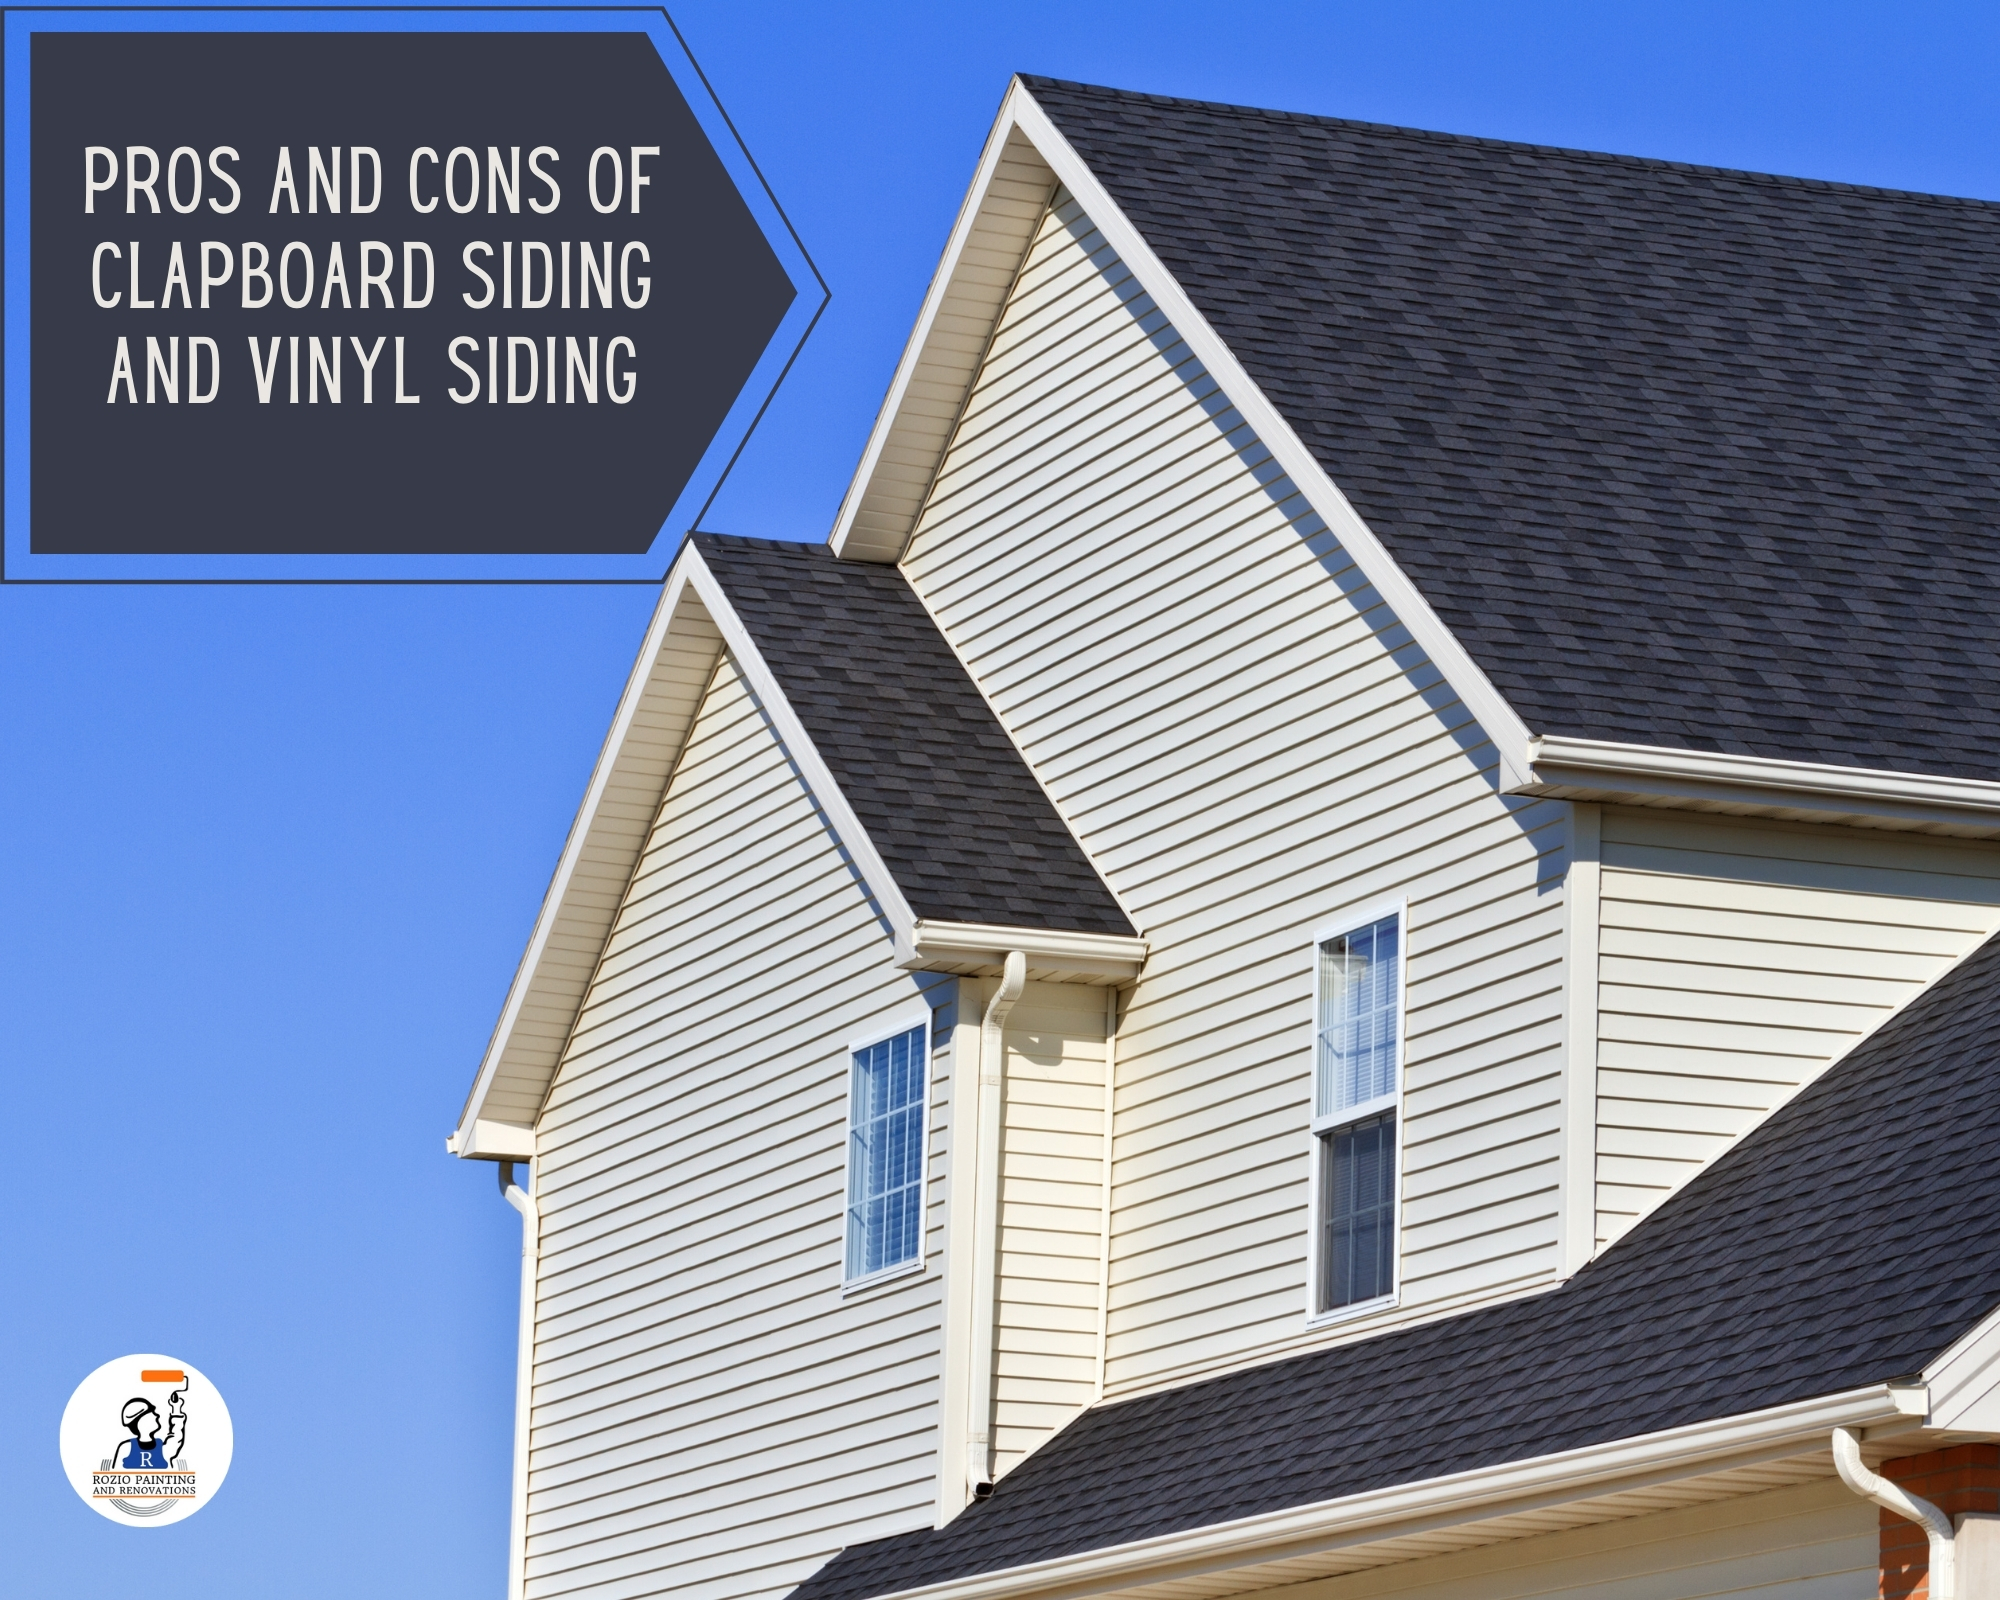 Pros and Cons of Clapboard Siding And Vinyl Siding